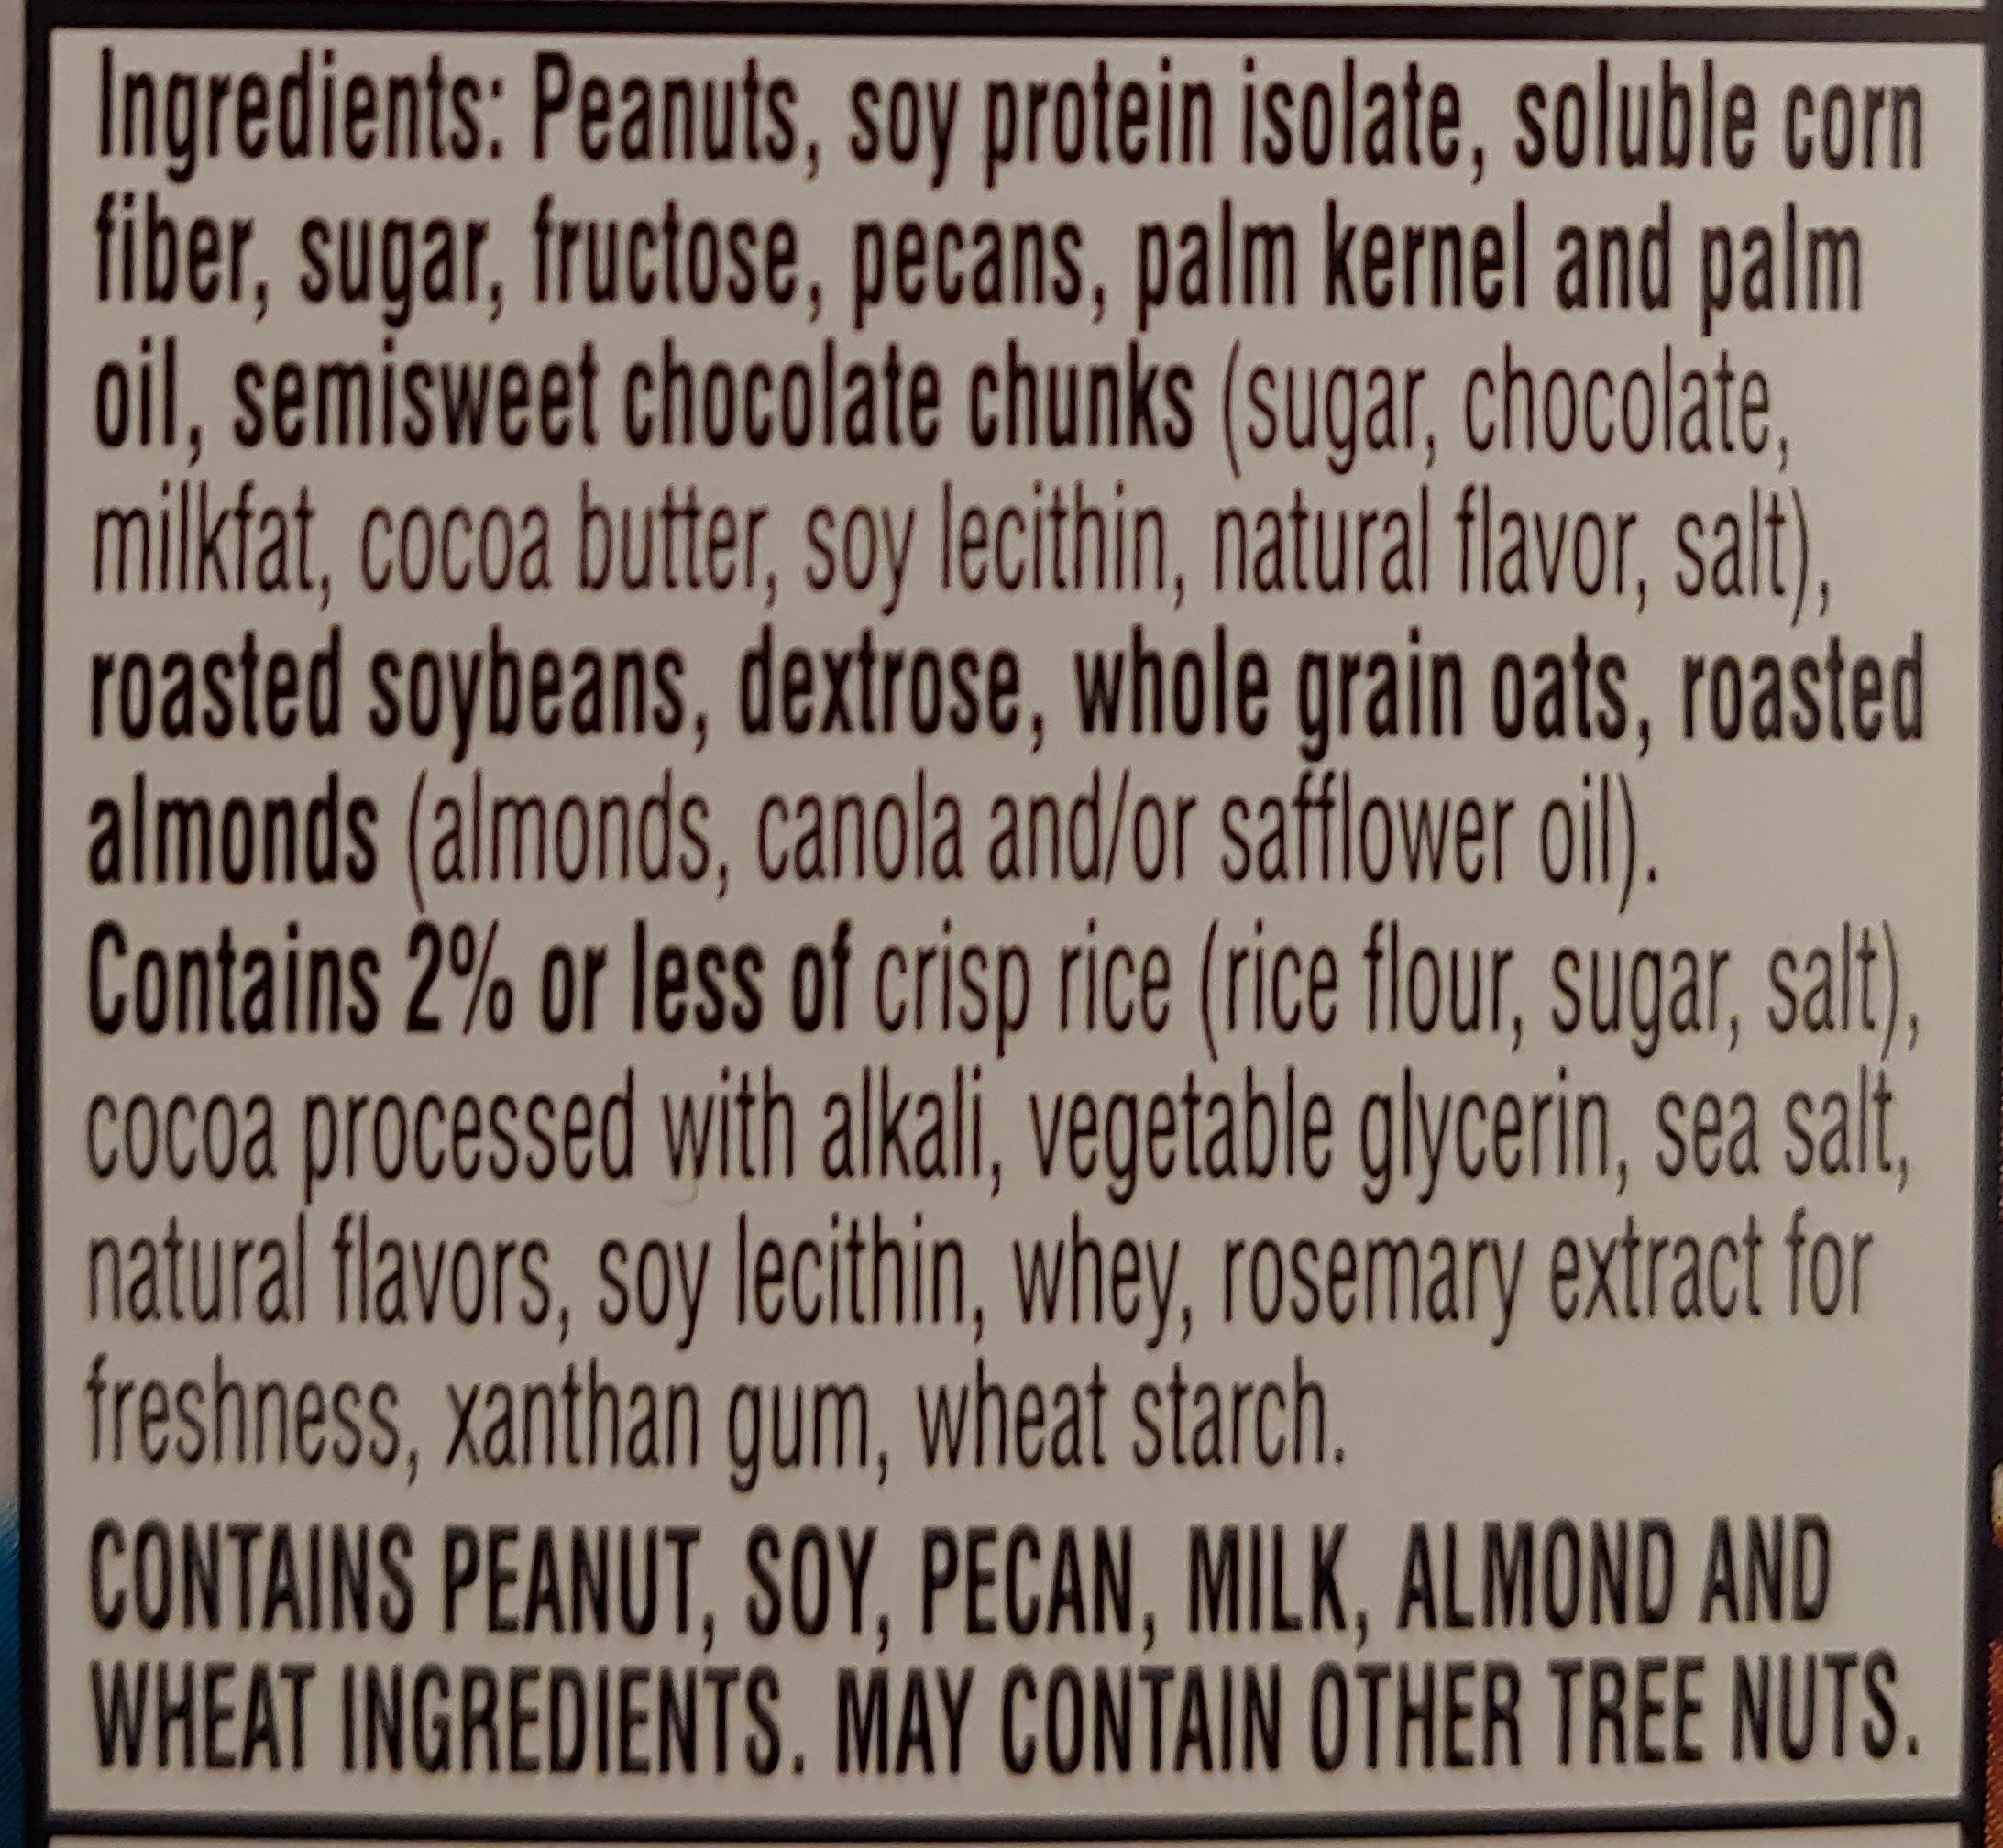 Chocolate peanut pecan protein snack bar, chocolate peanut pecan - Ingredients - en